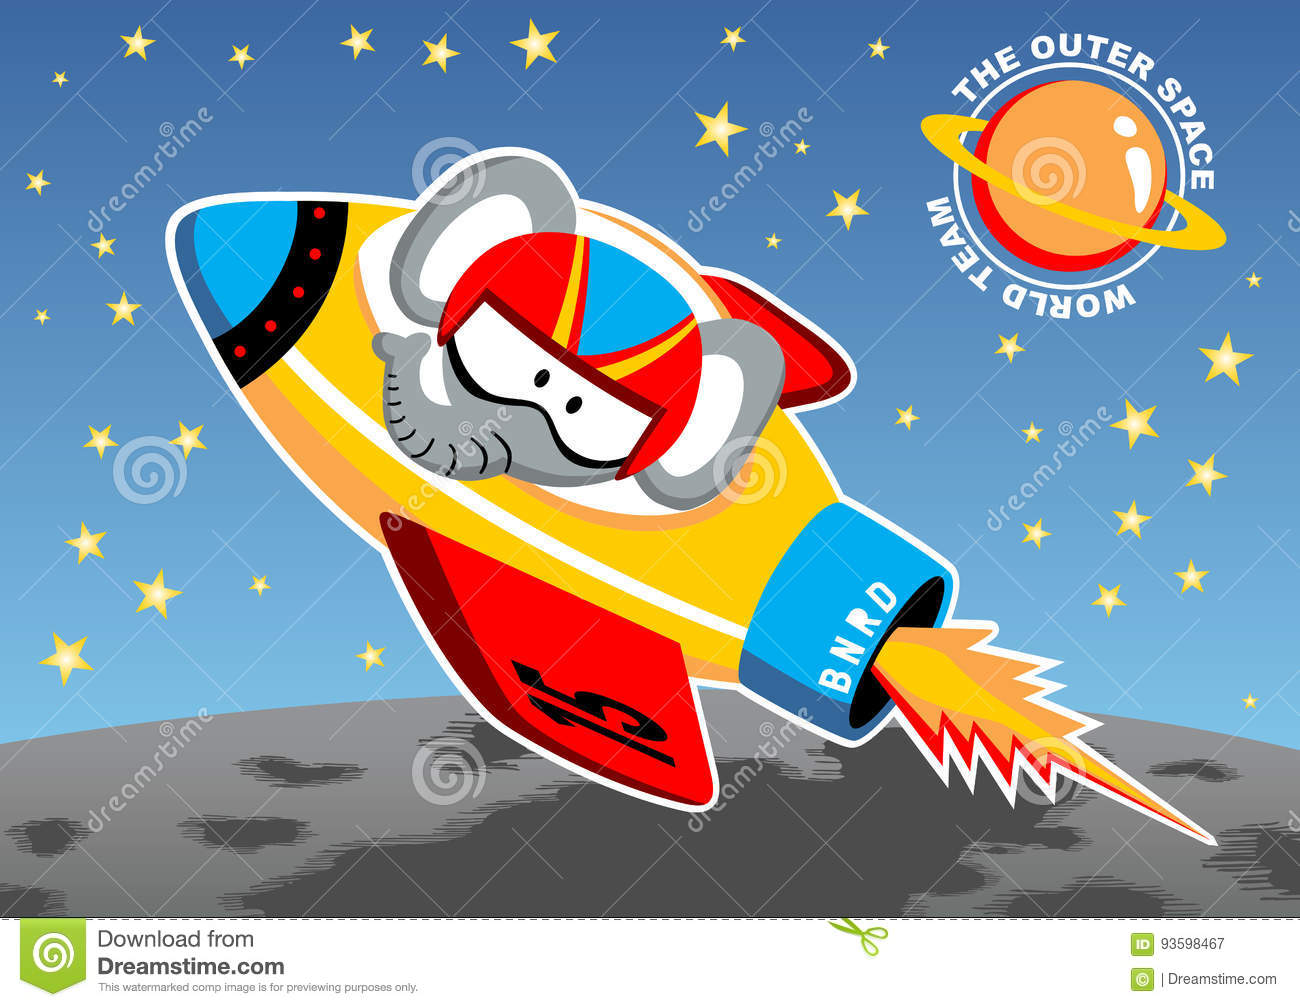 Rocket go to outer space